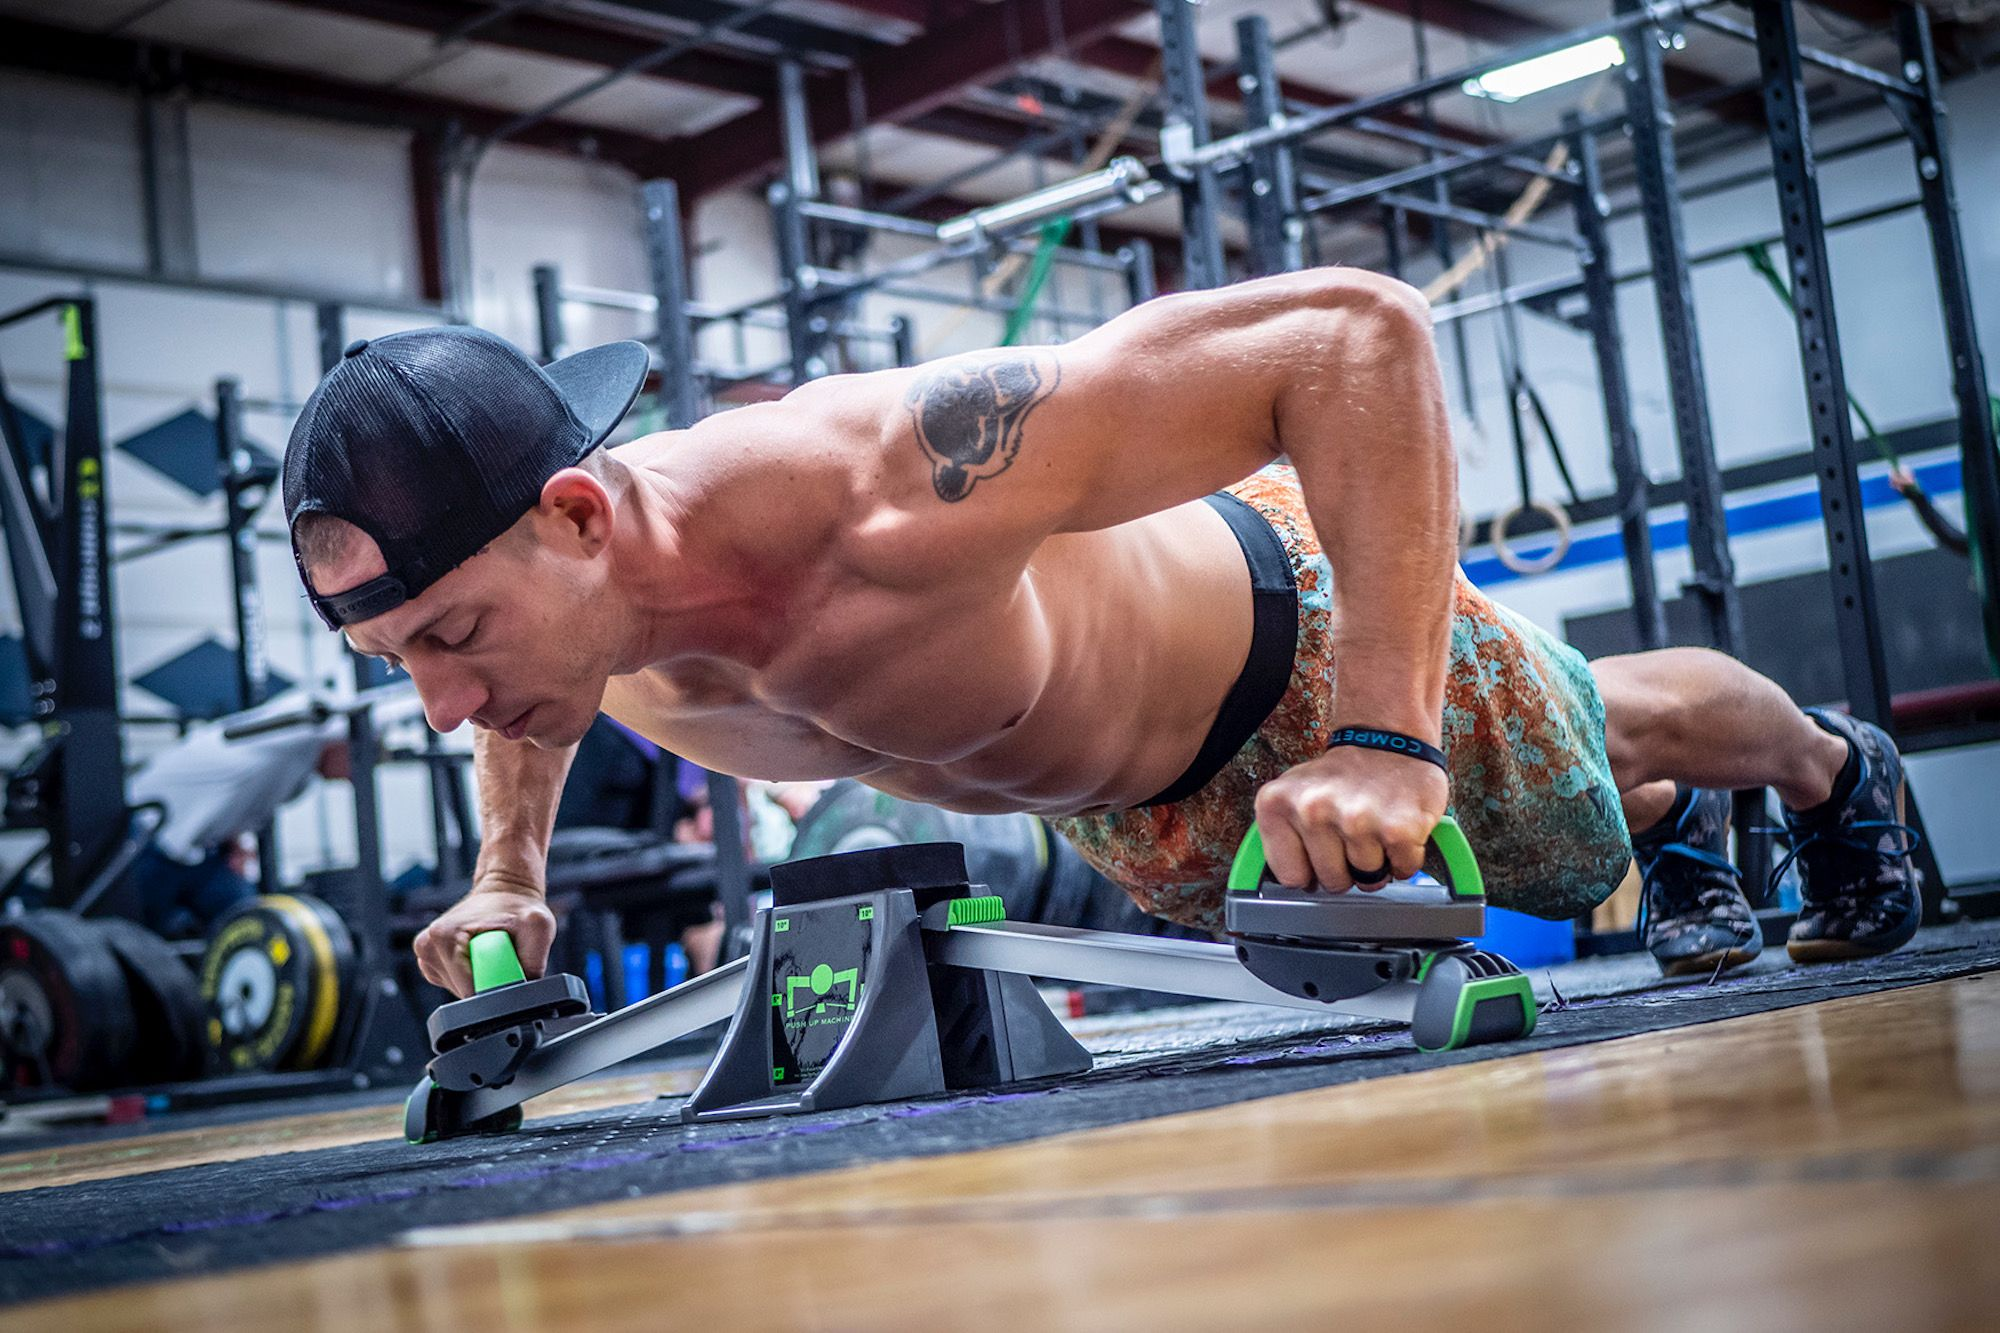 Get a Quick Workout Anywhere With This Push-Up Machine